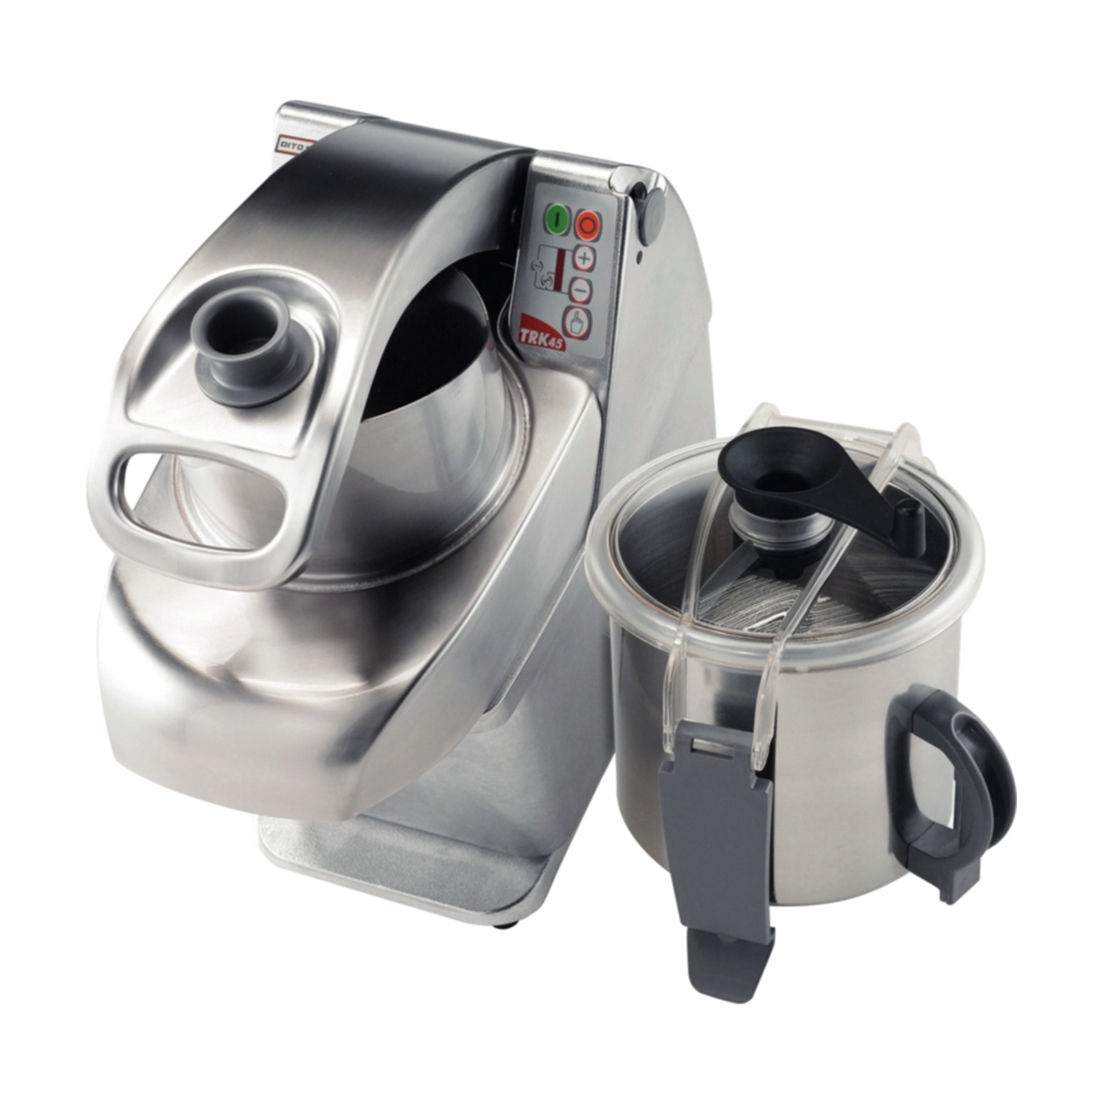 Dito Sama Combined cutter and vegetable slicer - 5.5 LT - VARIABLE SPEED - TRK55